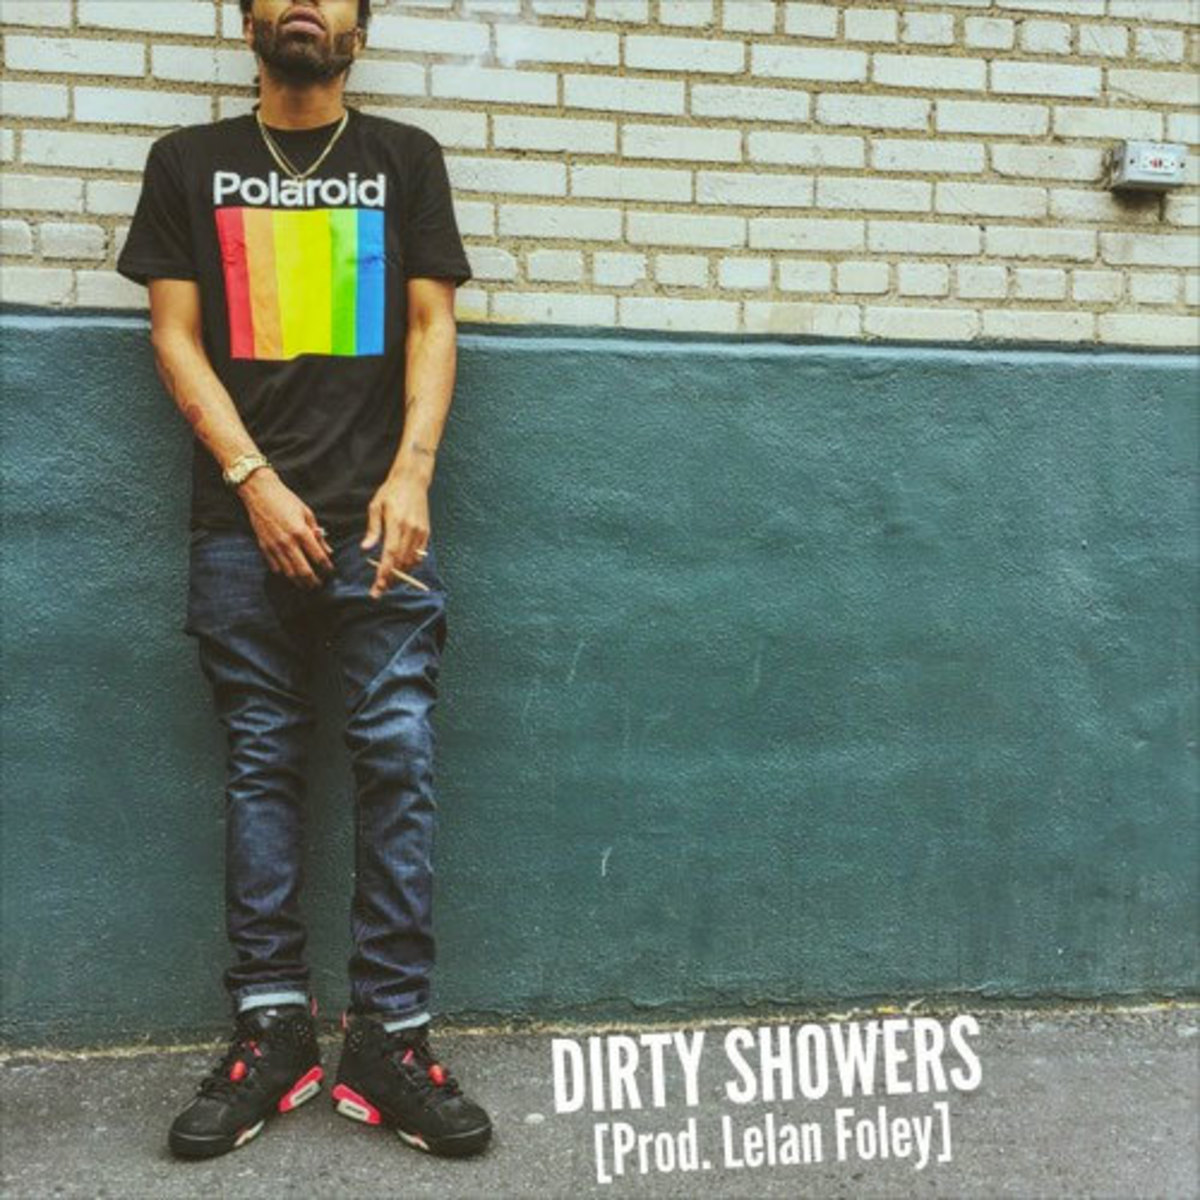 why-khaliq-dirty-showers.jpg